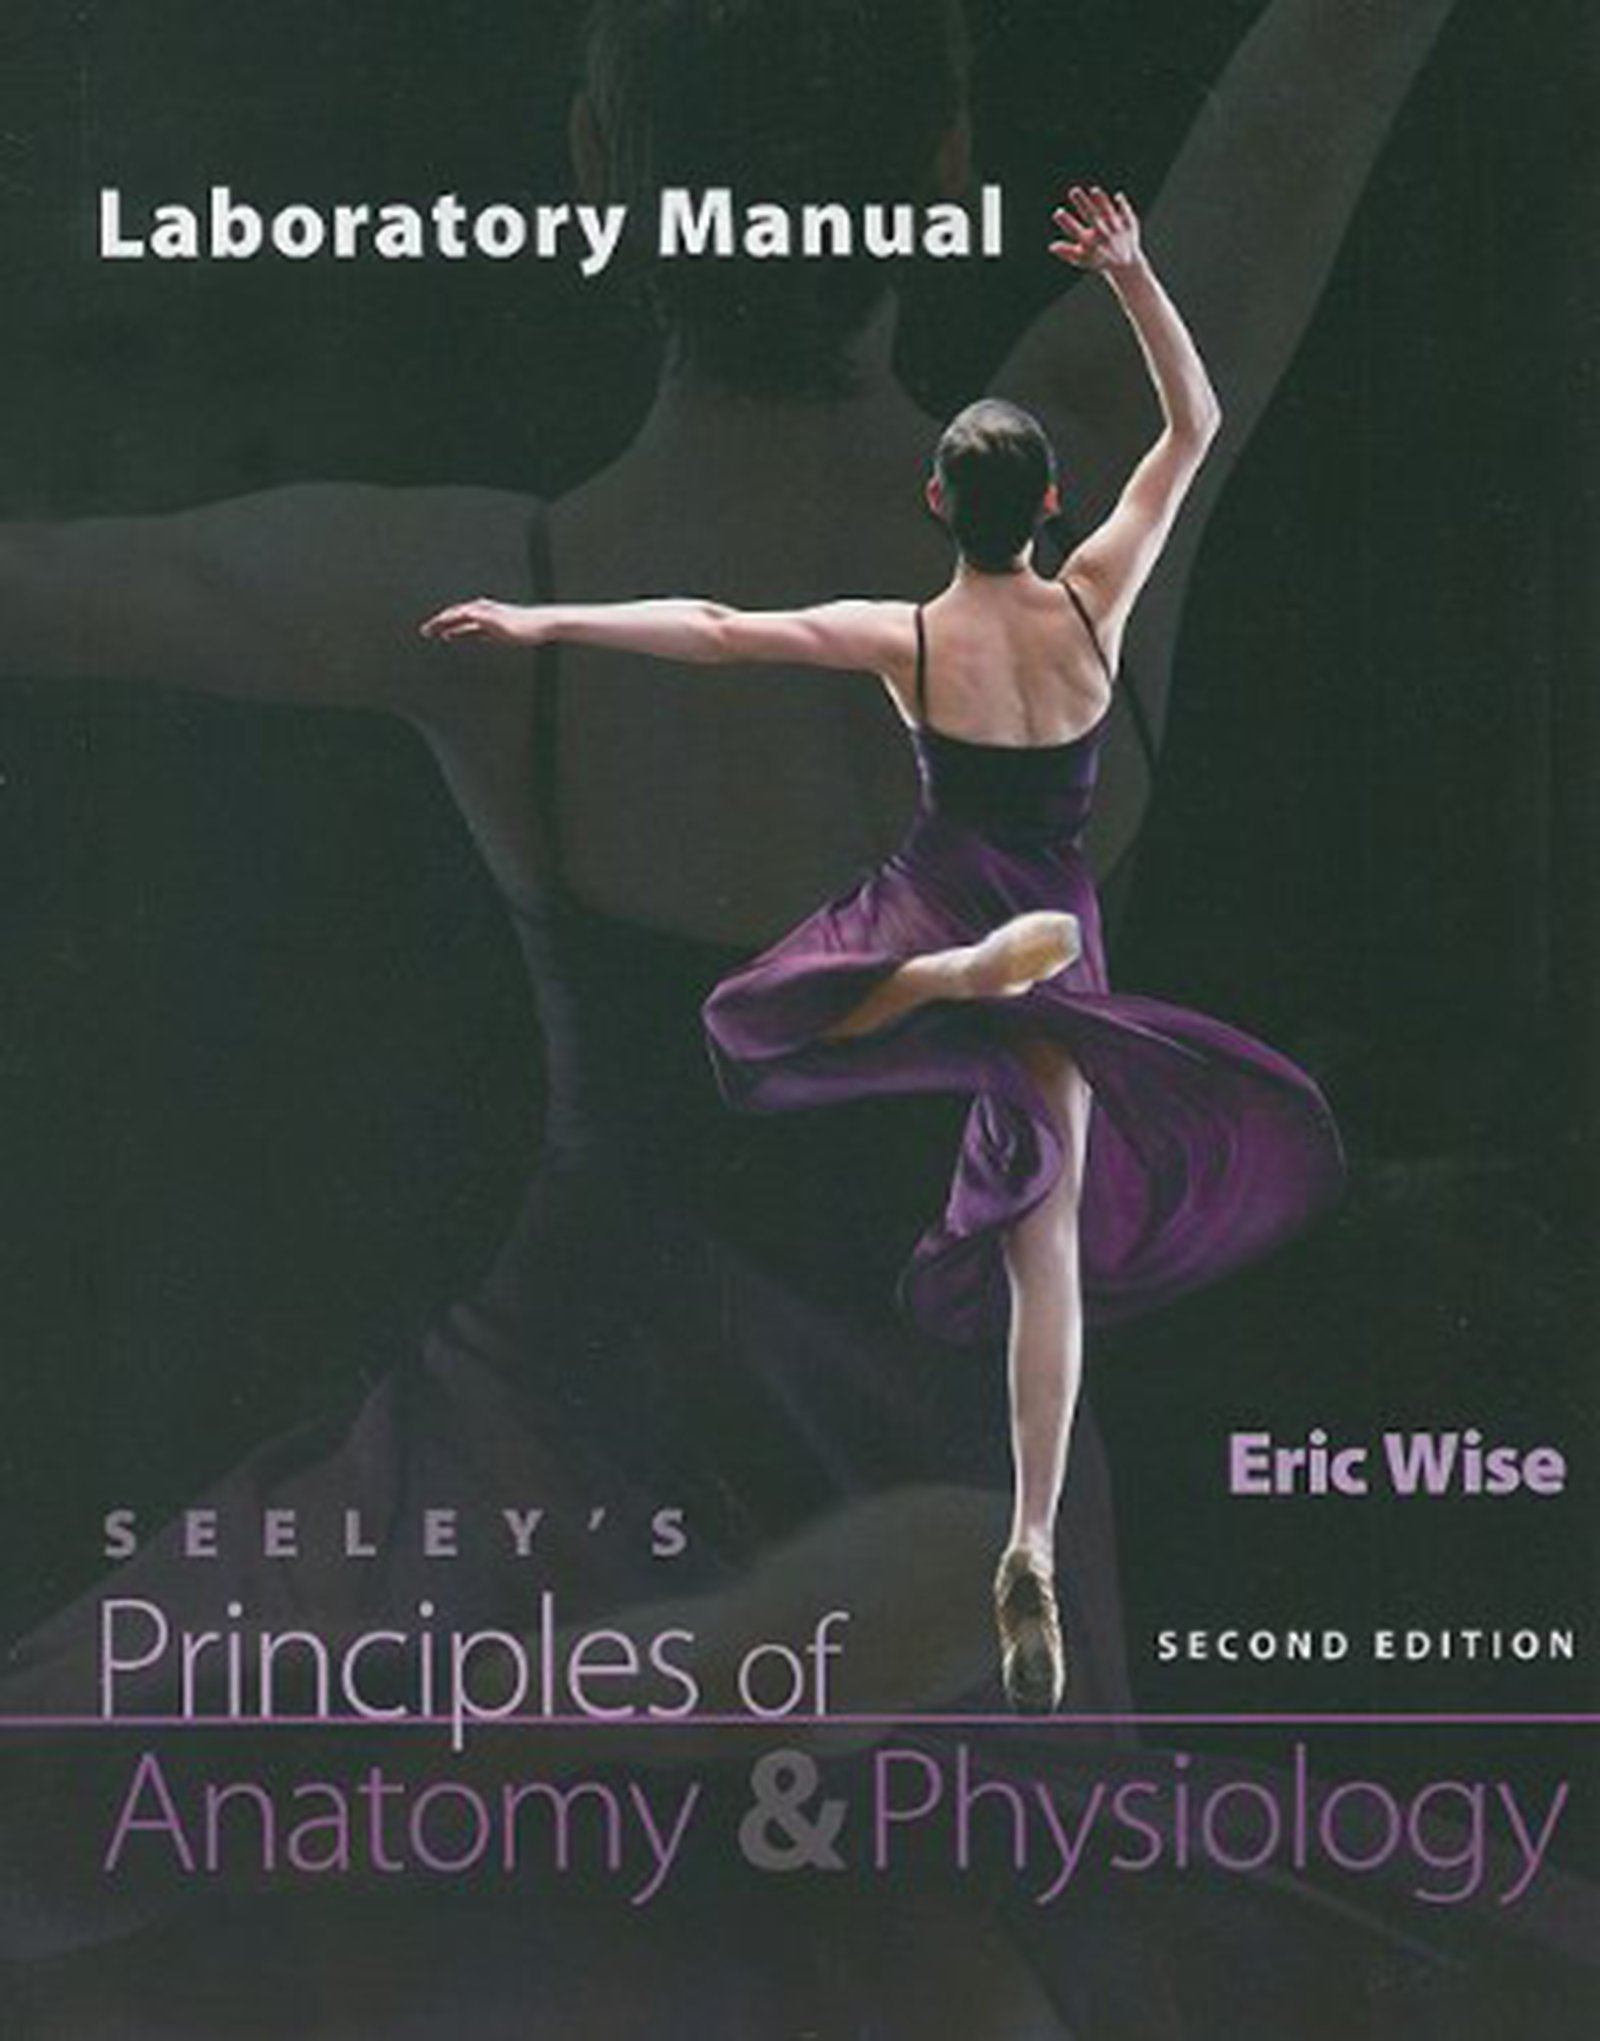 Principles of Anatomy and Physiology: Eric Wise: 9780077351281 ...